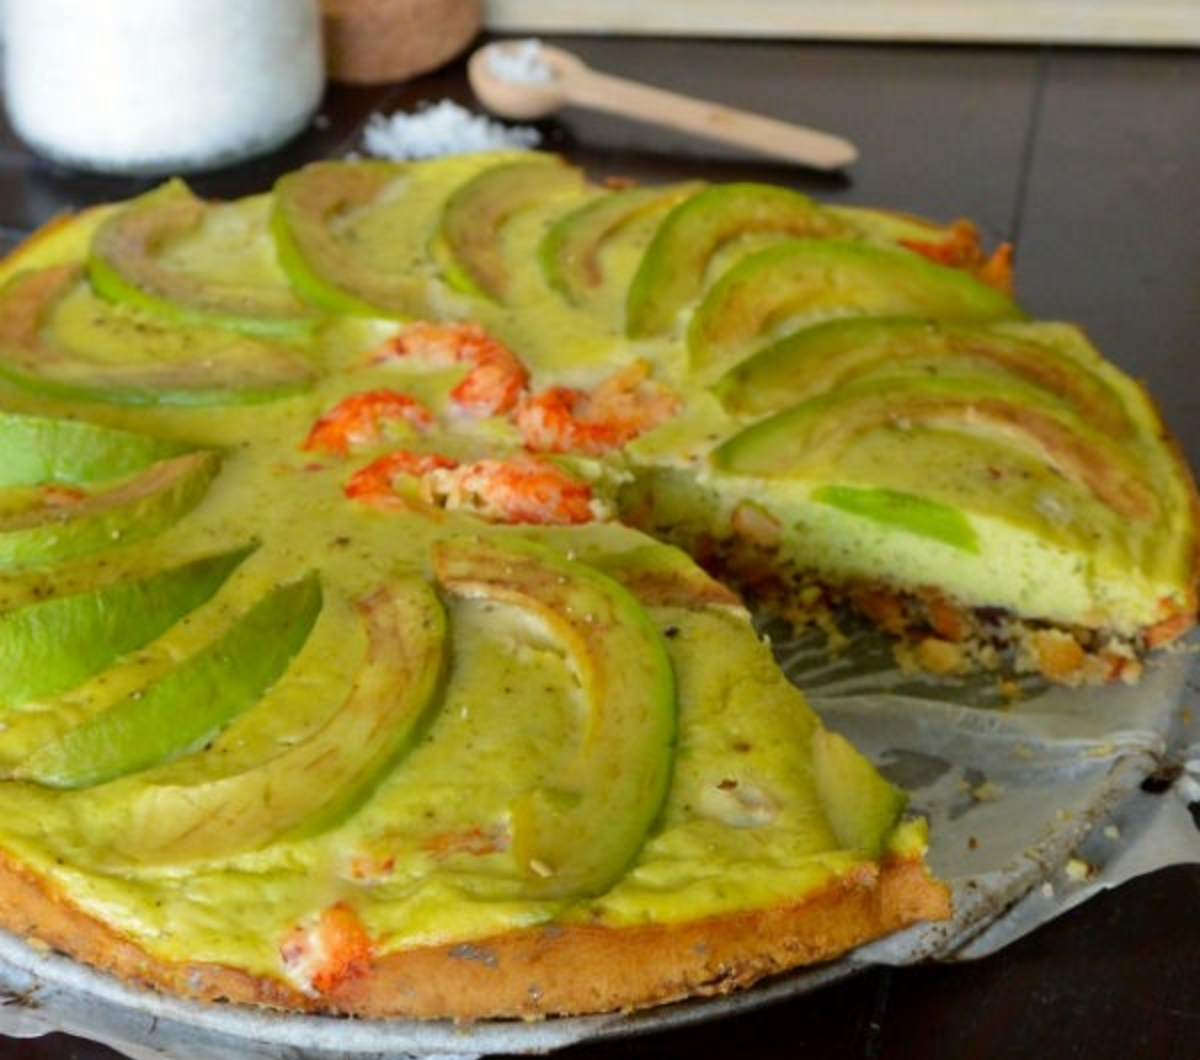 Avocado quiche